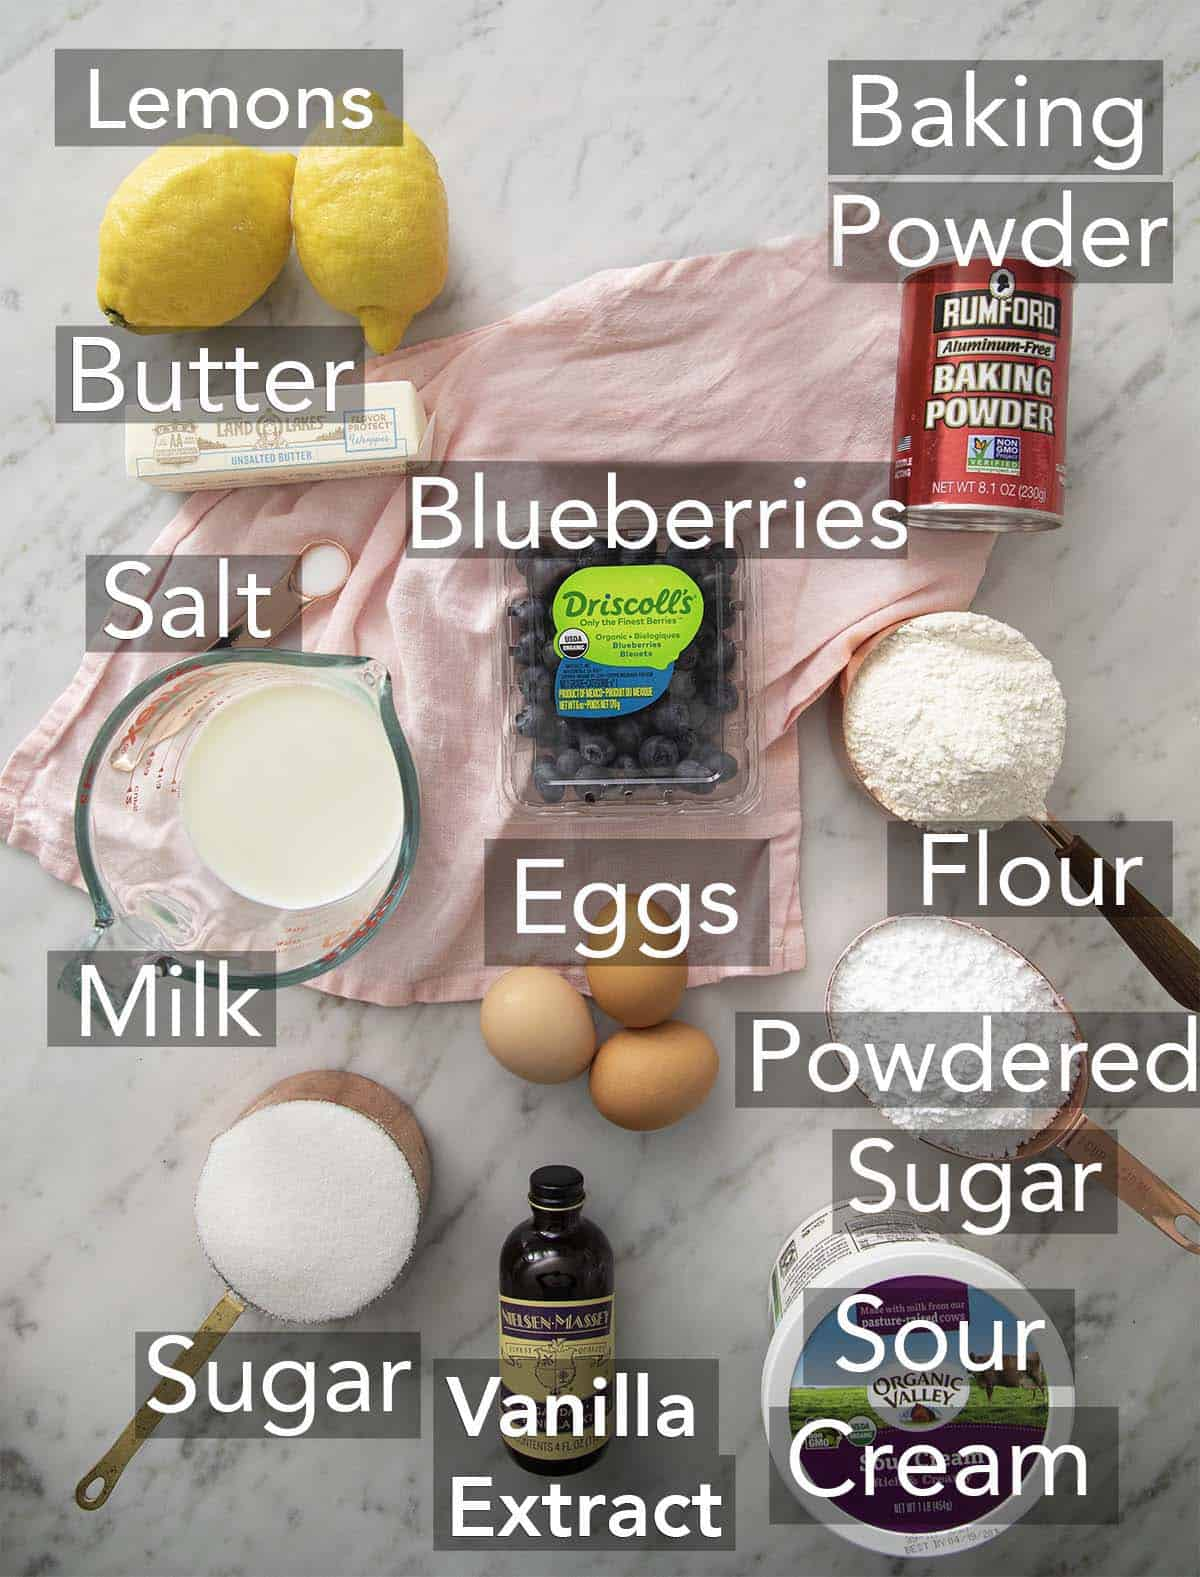 The ingredients for lemon blueberry cake on a marble surface.